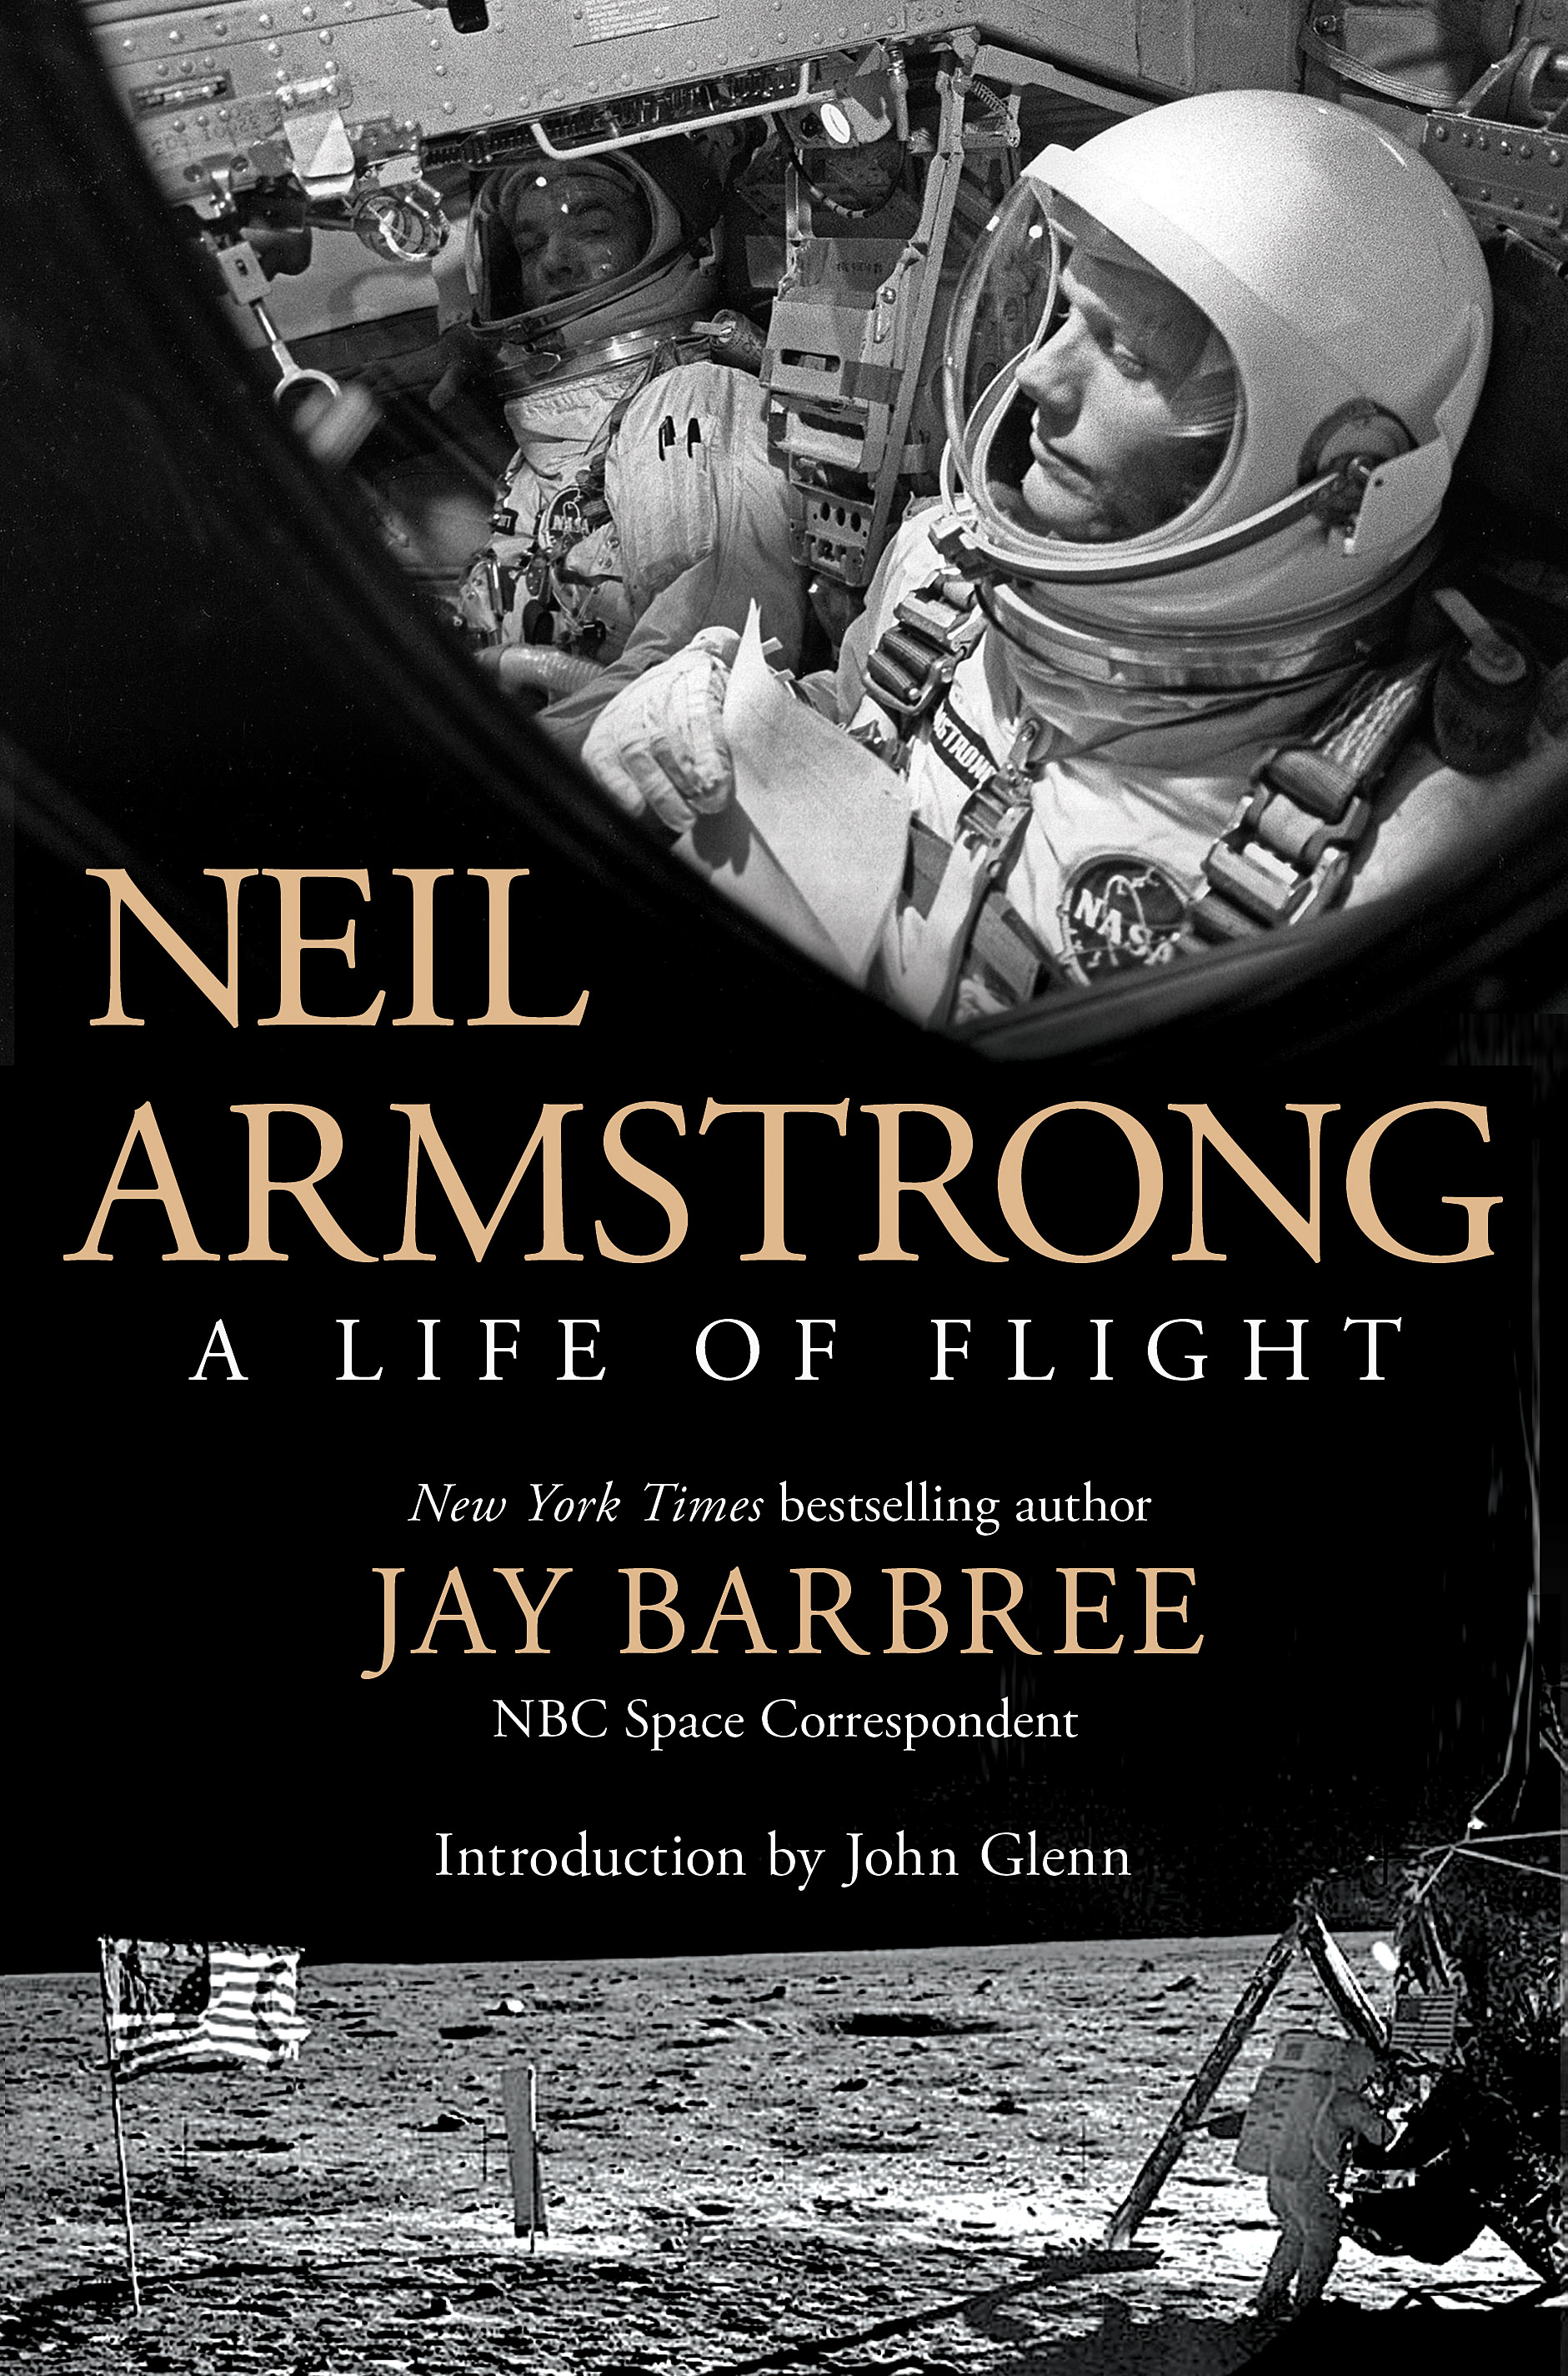 Book Review: Neil Armstrong – A Life of Flight by Jay Barbree